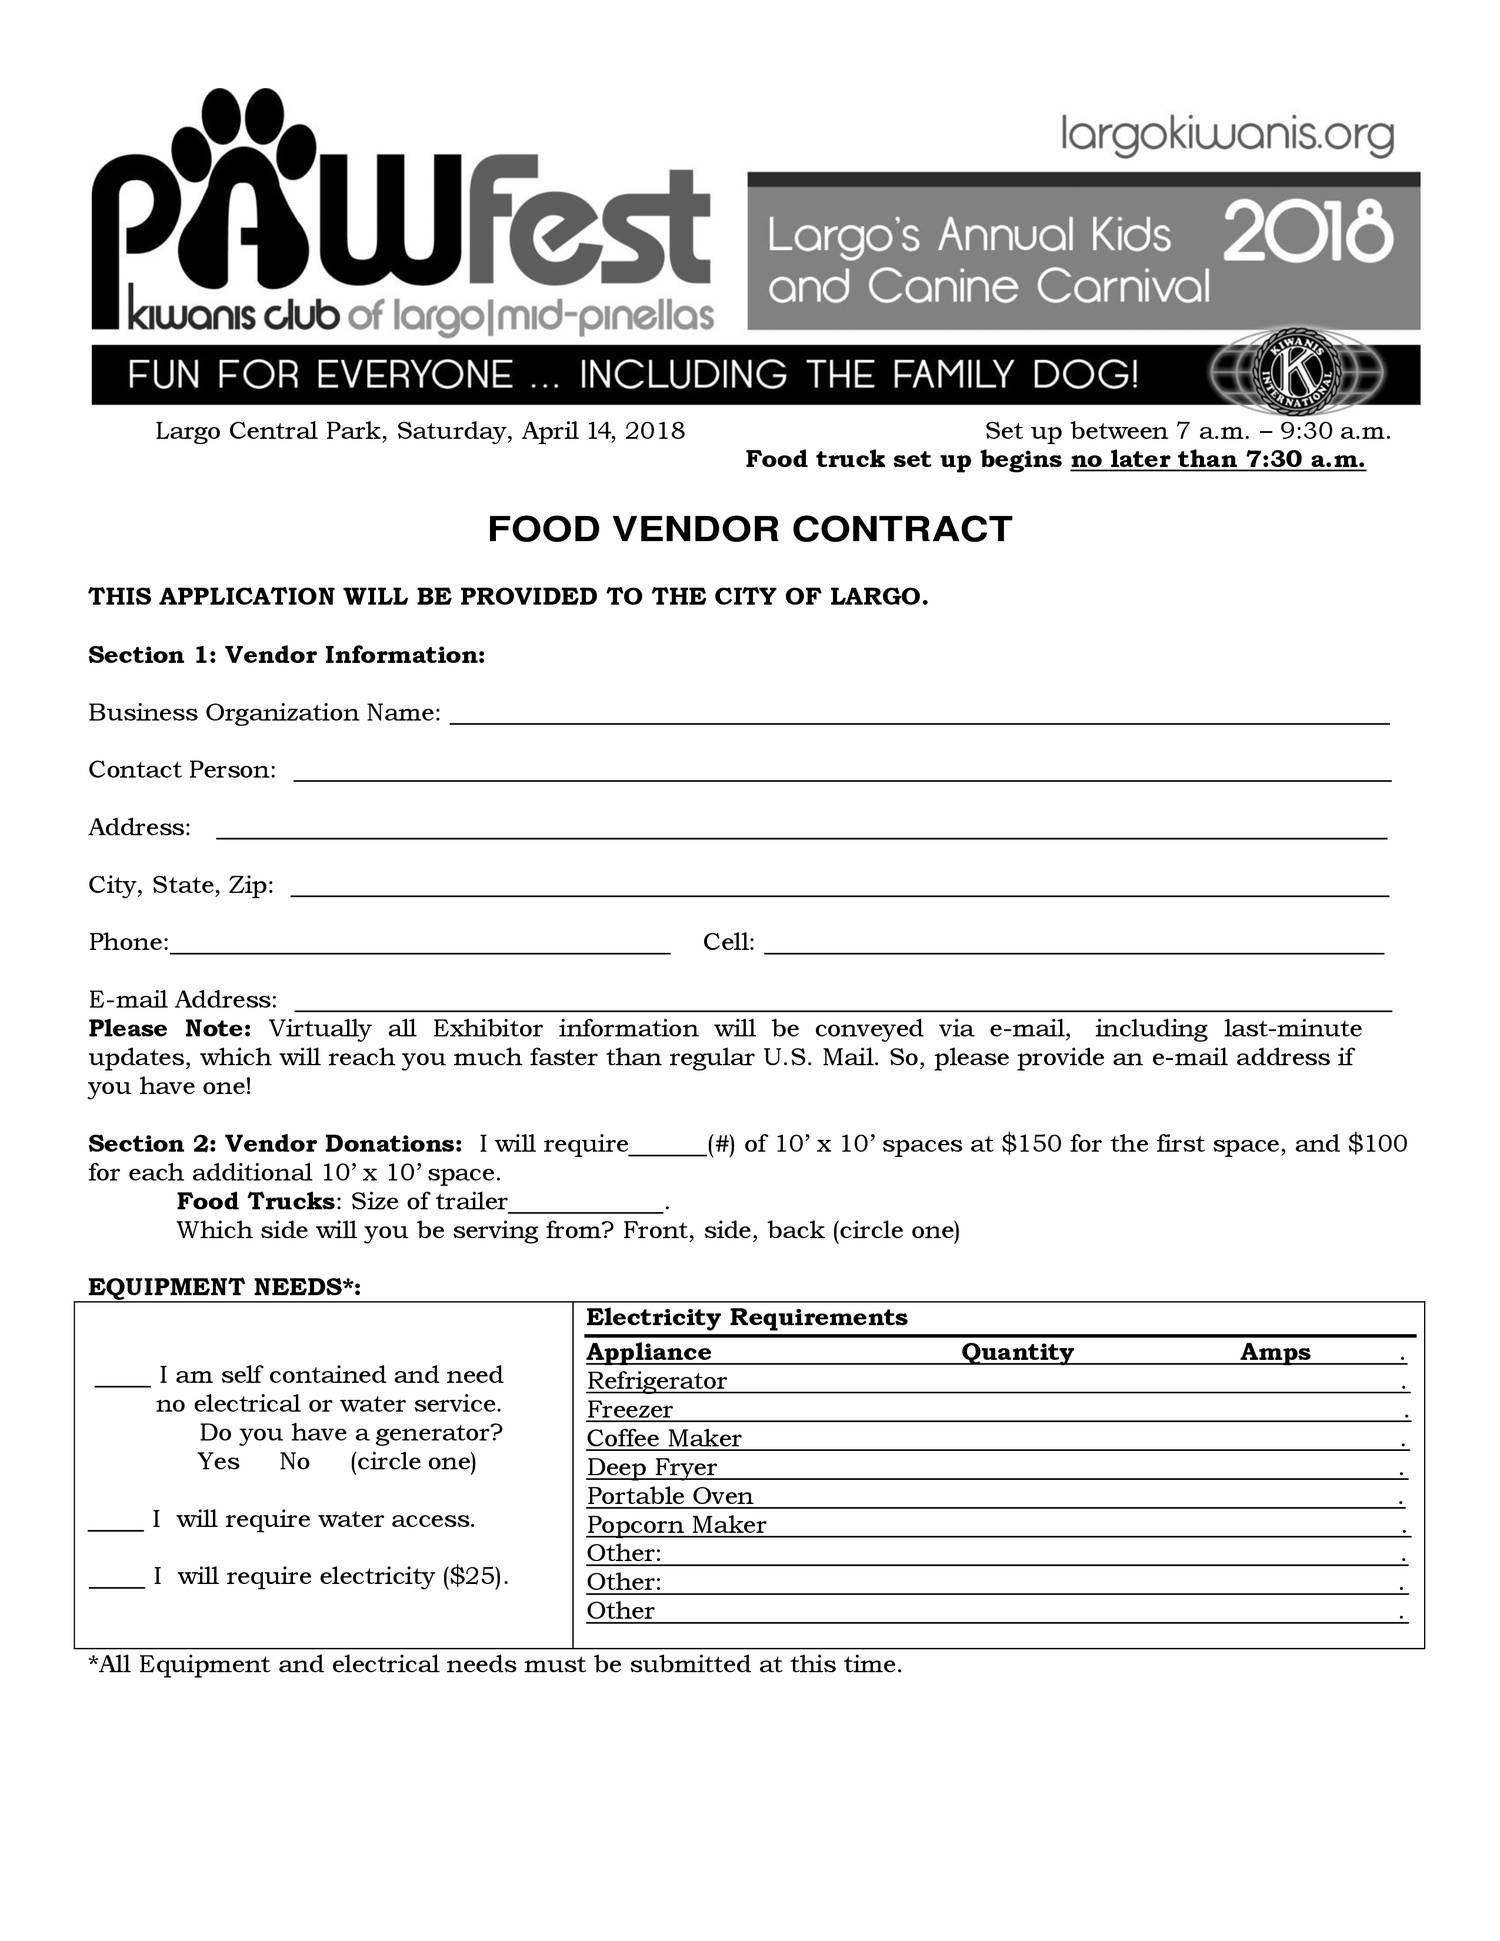 6 Pawfest Food Vendor Contract 2018 Pdf